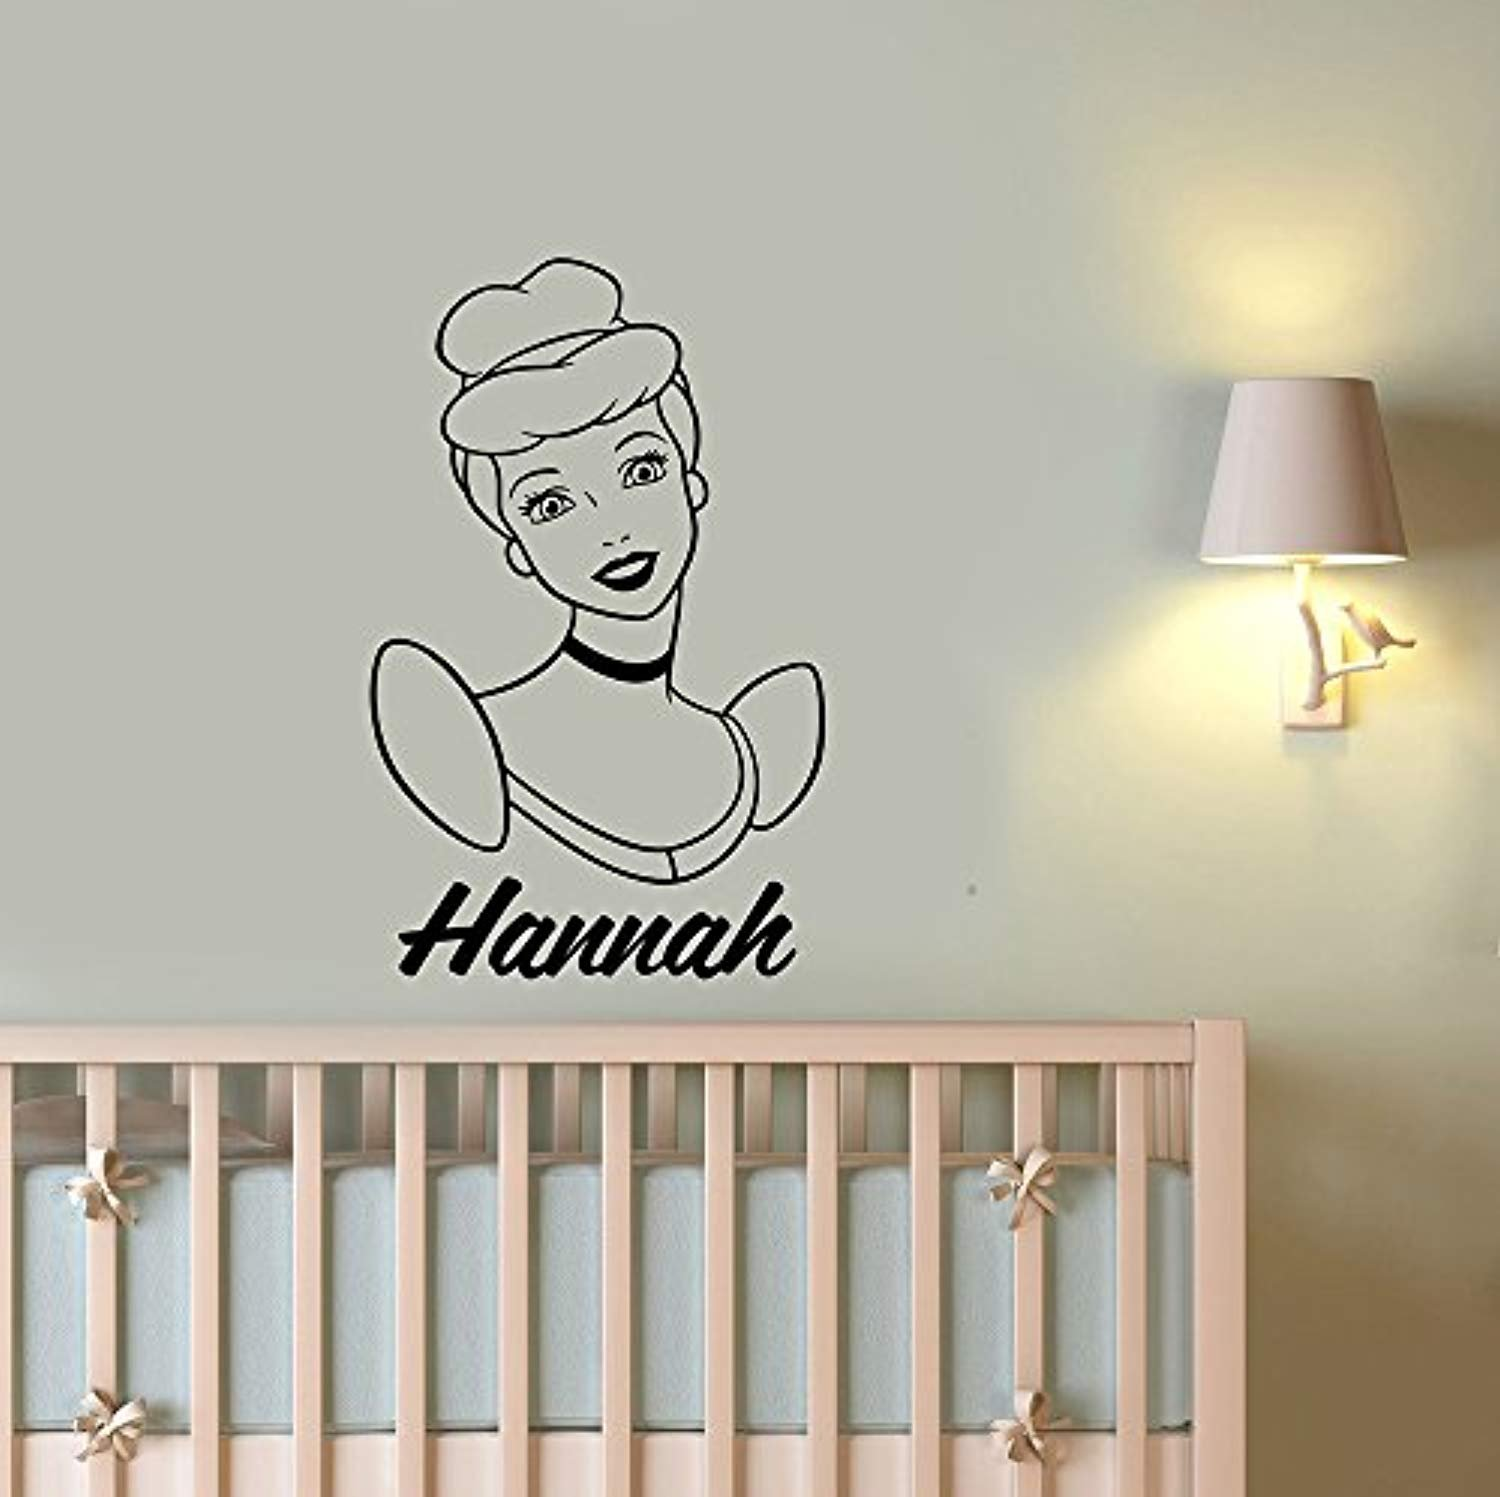 A Good Decals USA Personalized Name Cinderella Wall Decal Custom Sticker Disney Princess Vinyl Art Decorations for Home Kids Girls Room Bedroom Nursery Decor cind2 by A Good Decals USA